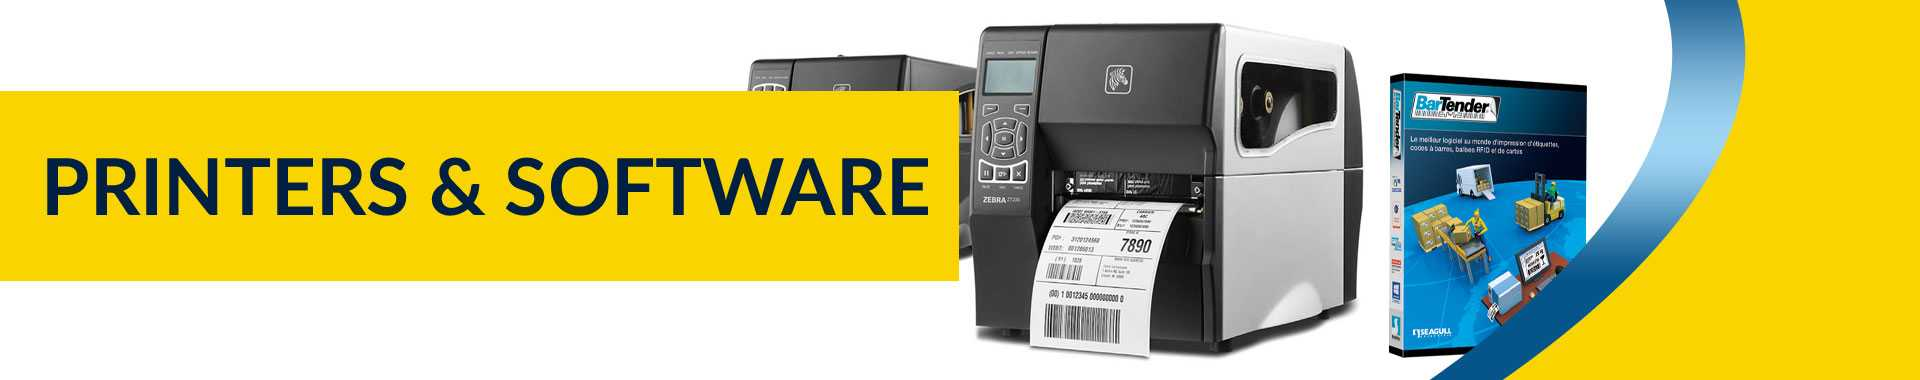 Label Printing Equipment, Software & Supplies | Adazon